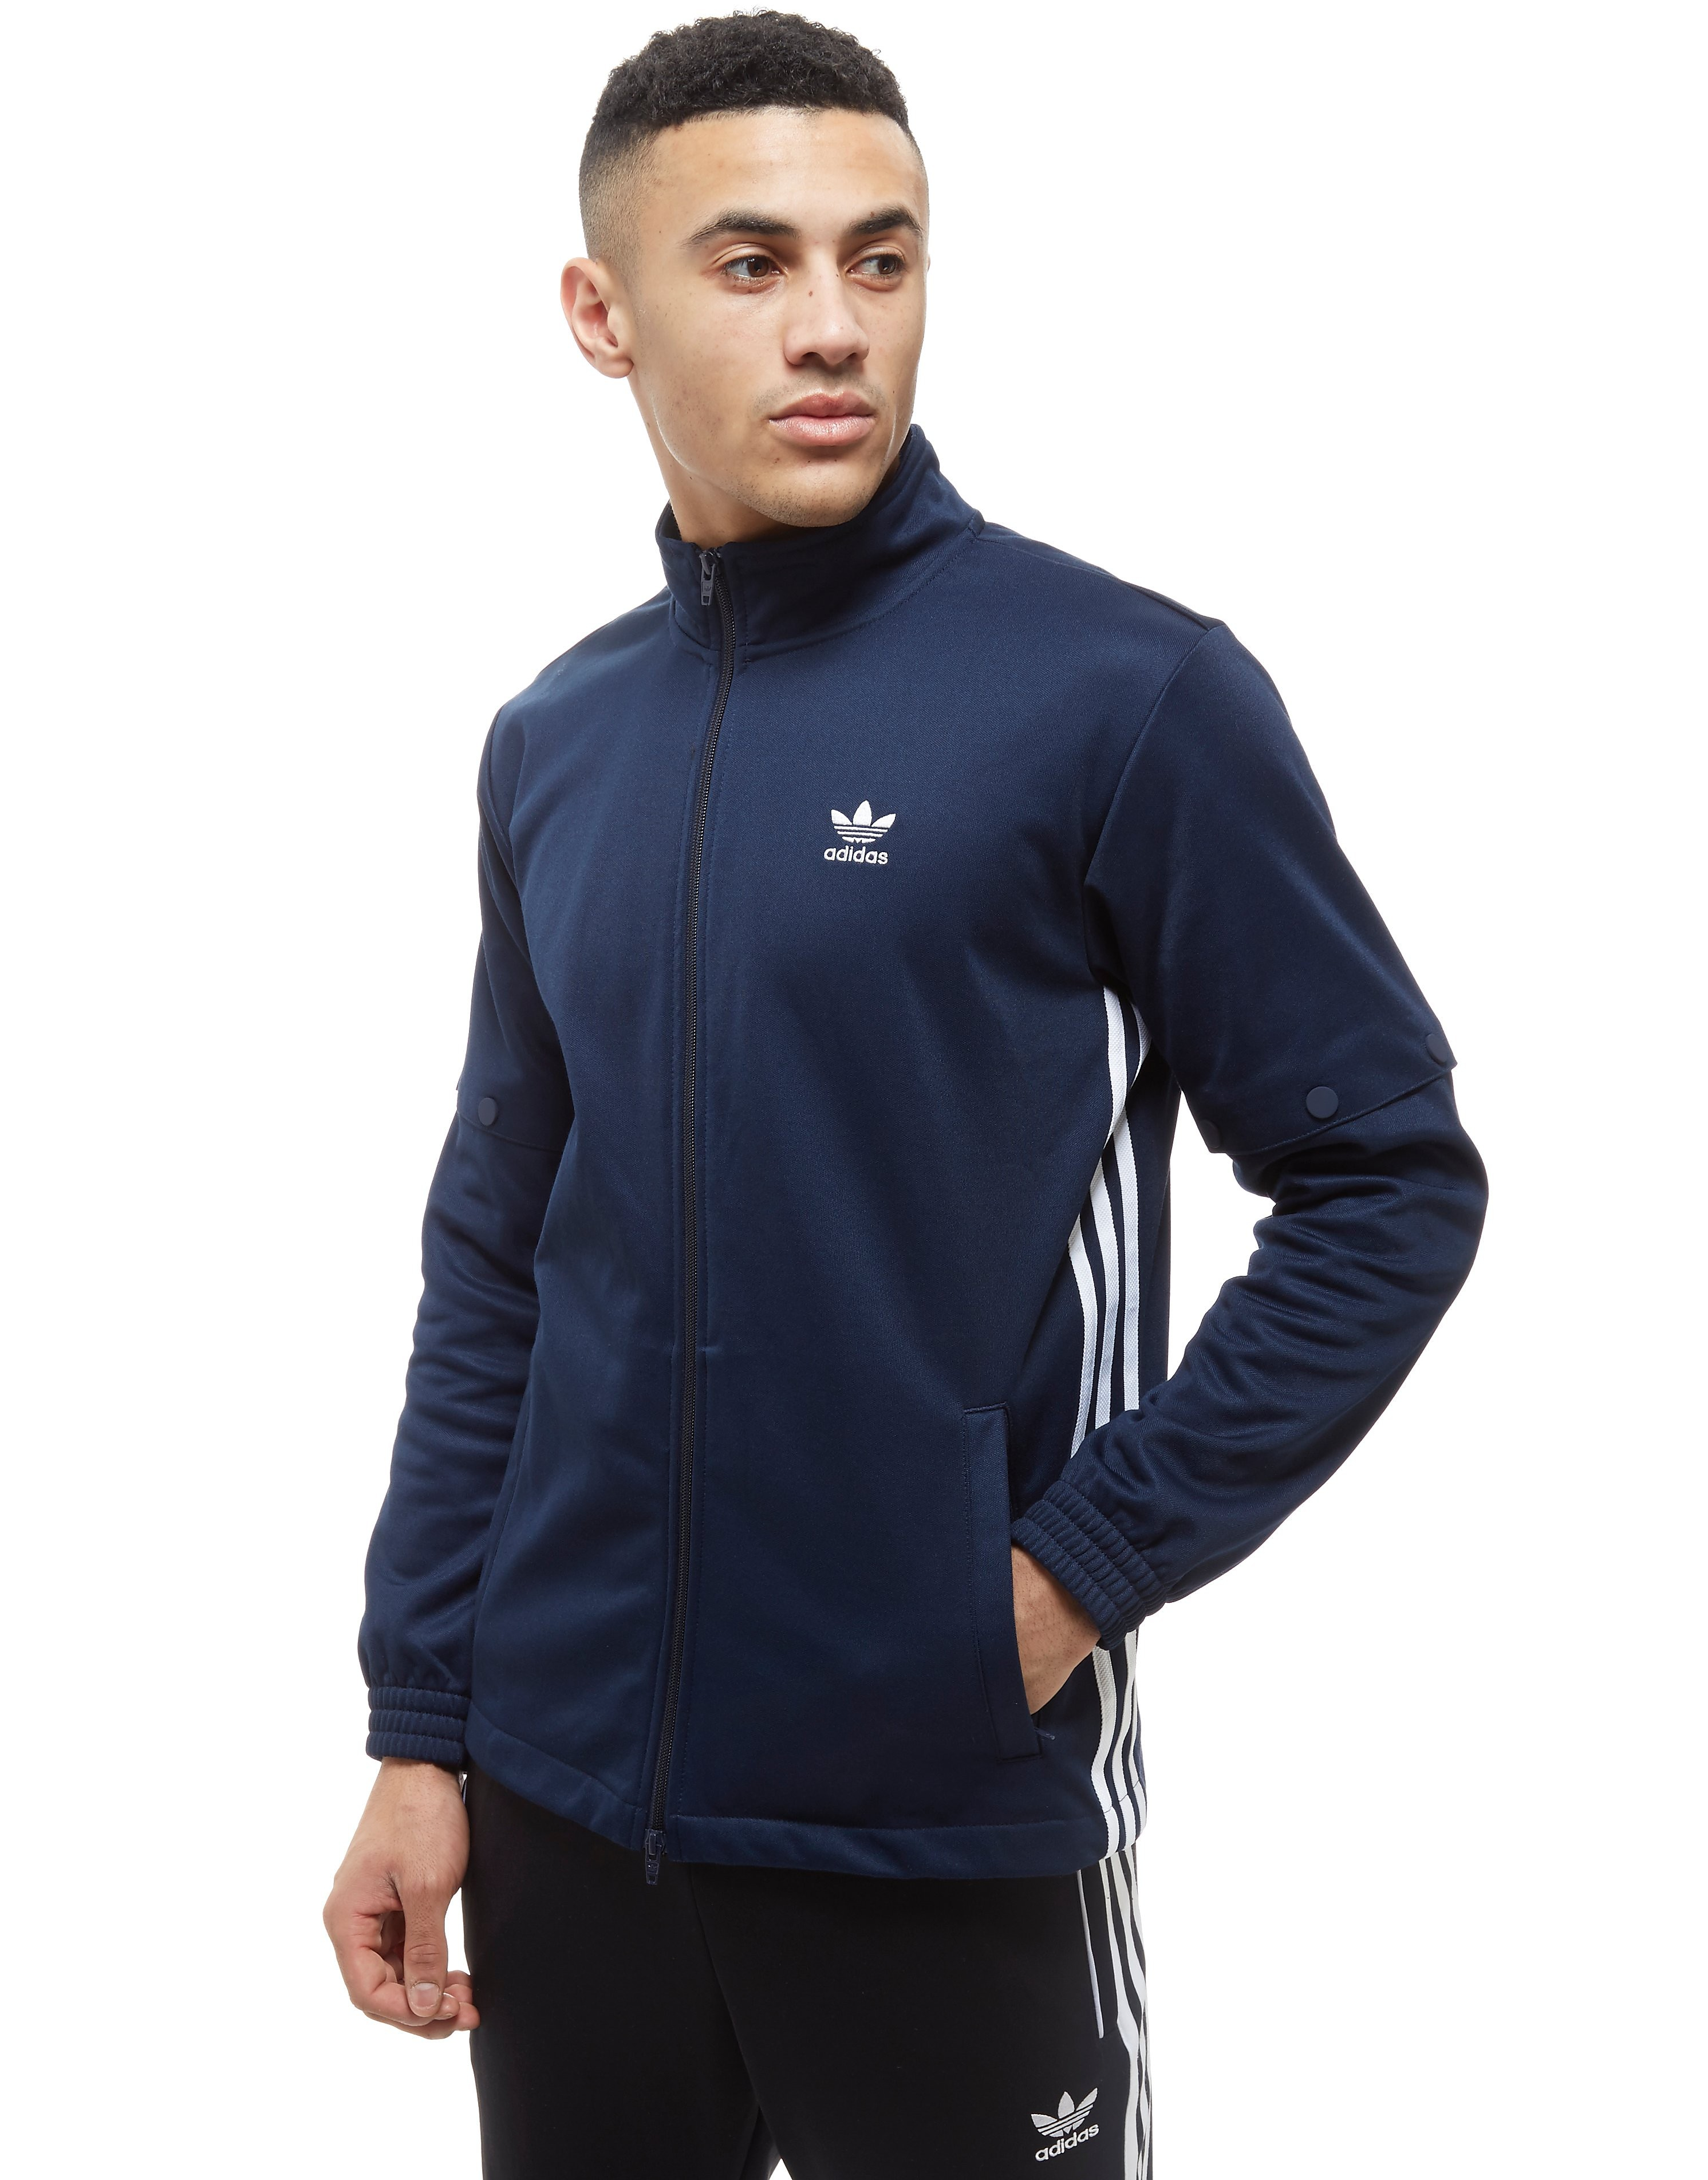 adidas Originals Trefoil Snap Track Top